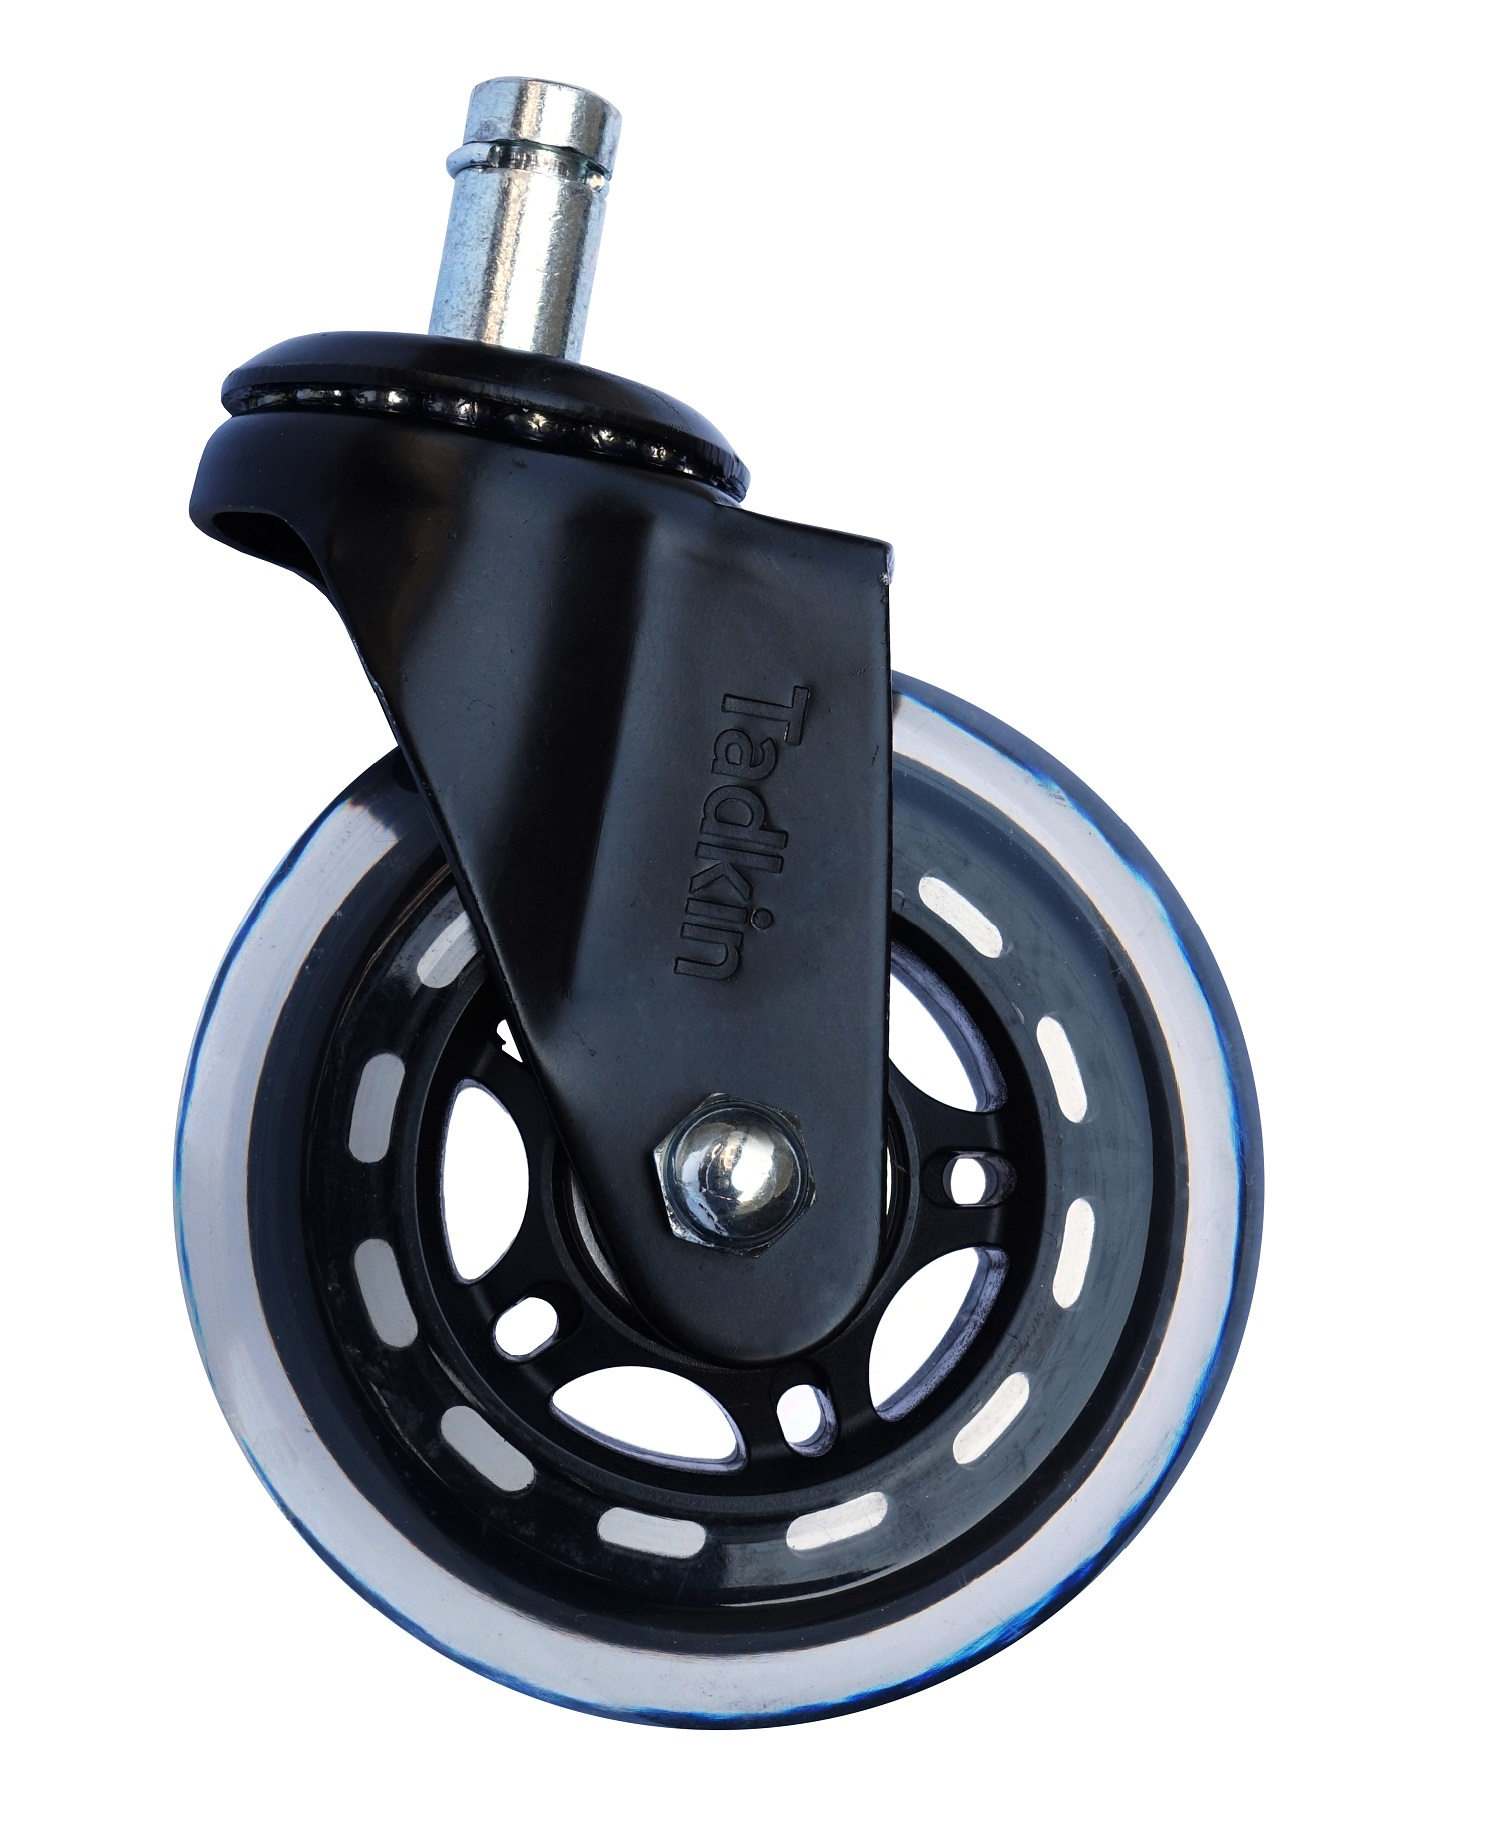 Strongest Heavy Duty Office Chair Caster Wheels For Your Desk Chair.  Smooth, Quiet Rolling Casters Perfect For Hardwood Floors, Carpet, Laminate  And Tile